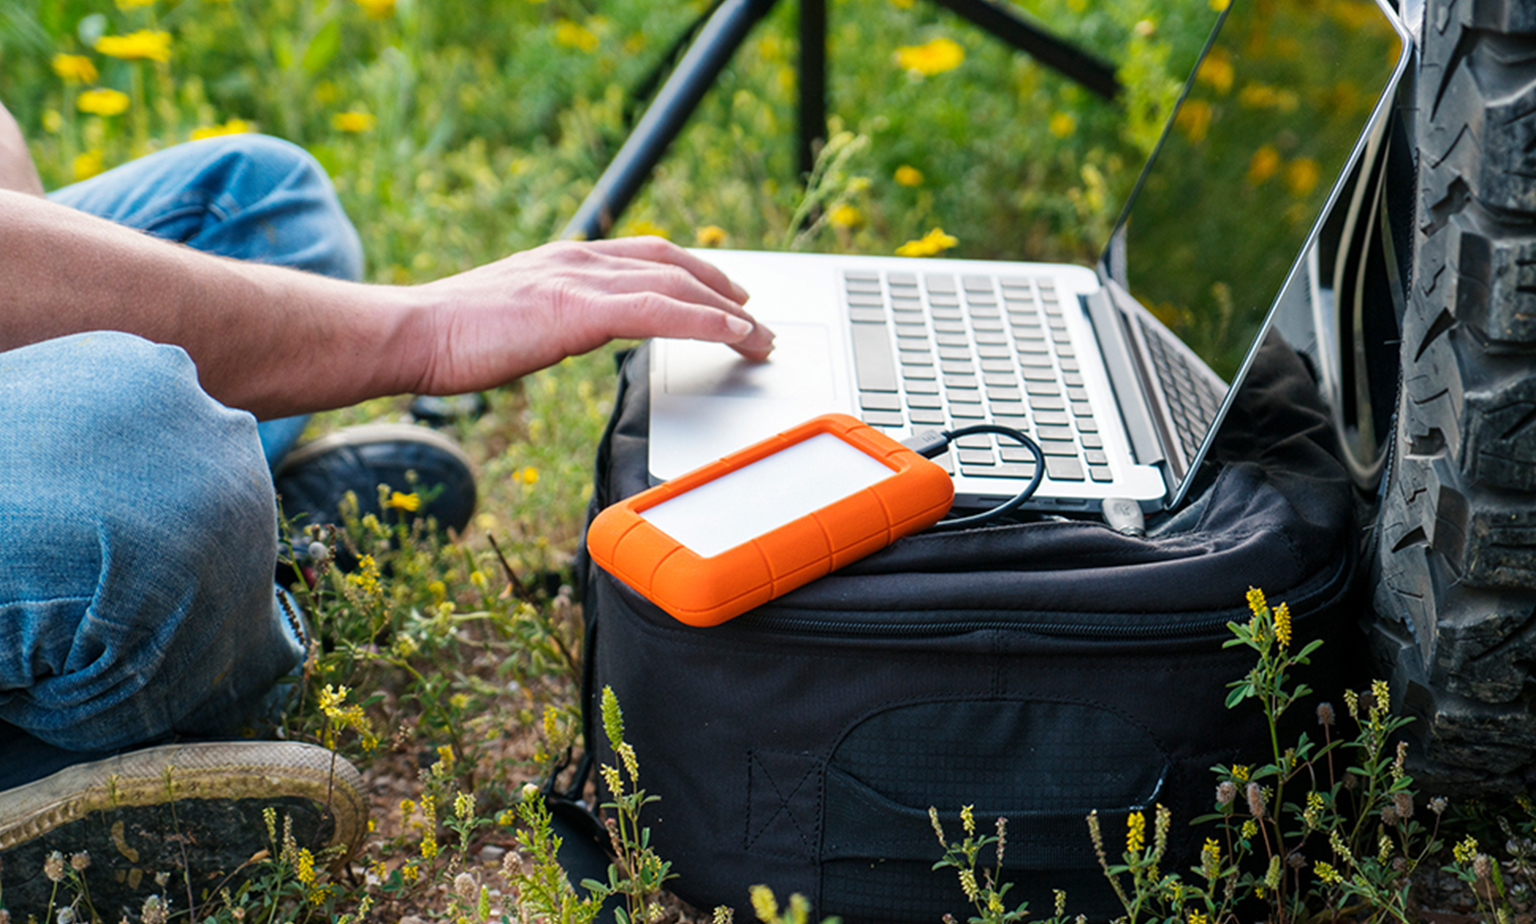 Portable Data Storage for Less